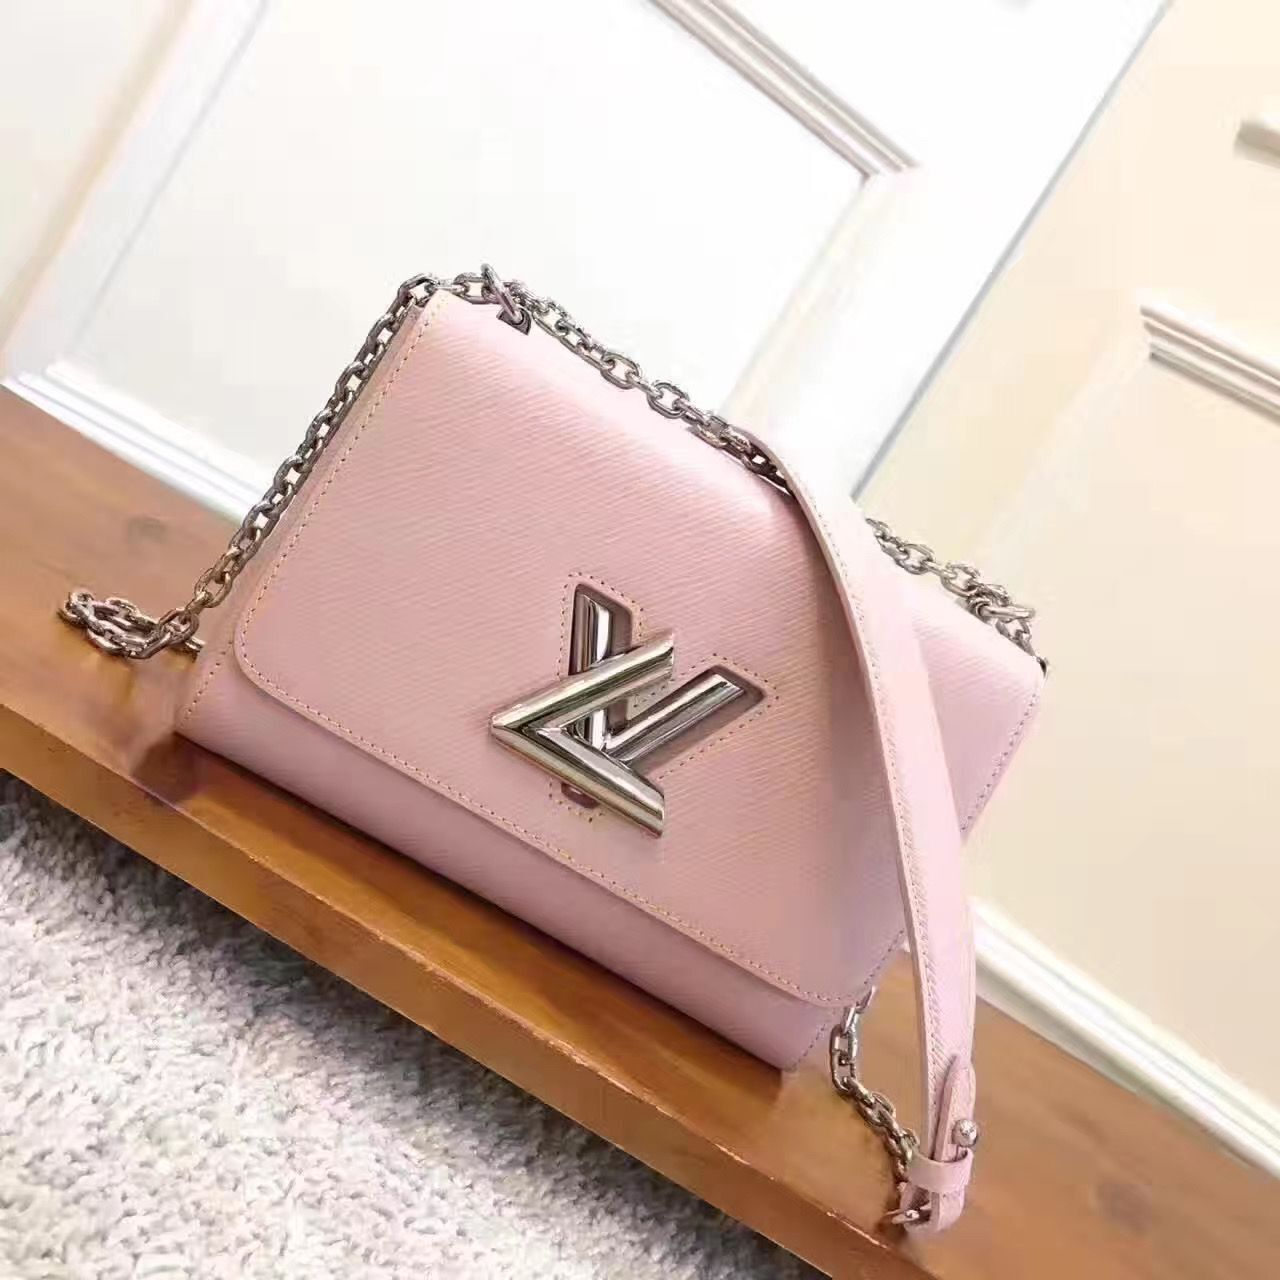 Louis Vuitton Original Epi Leather Twist MM M50380 Pink